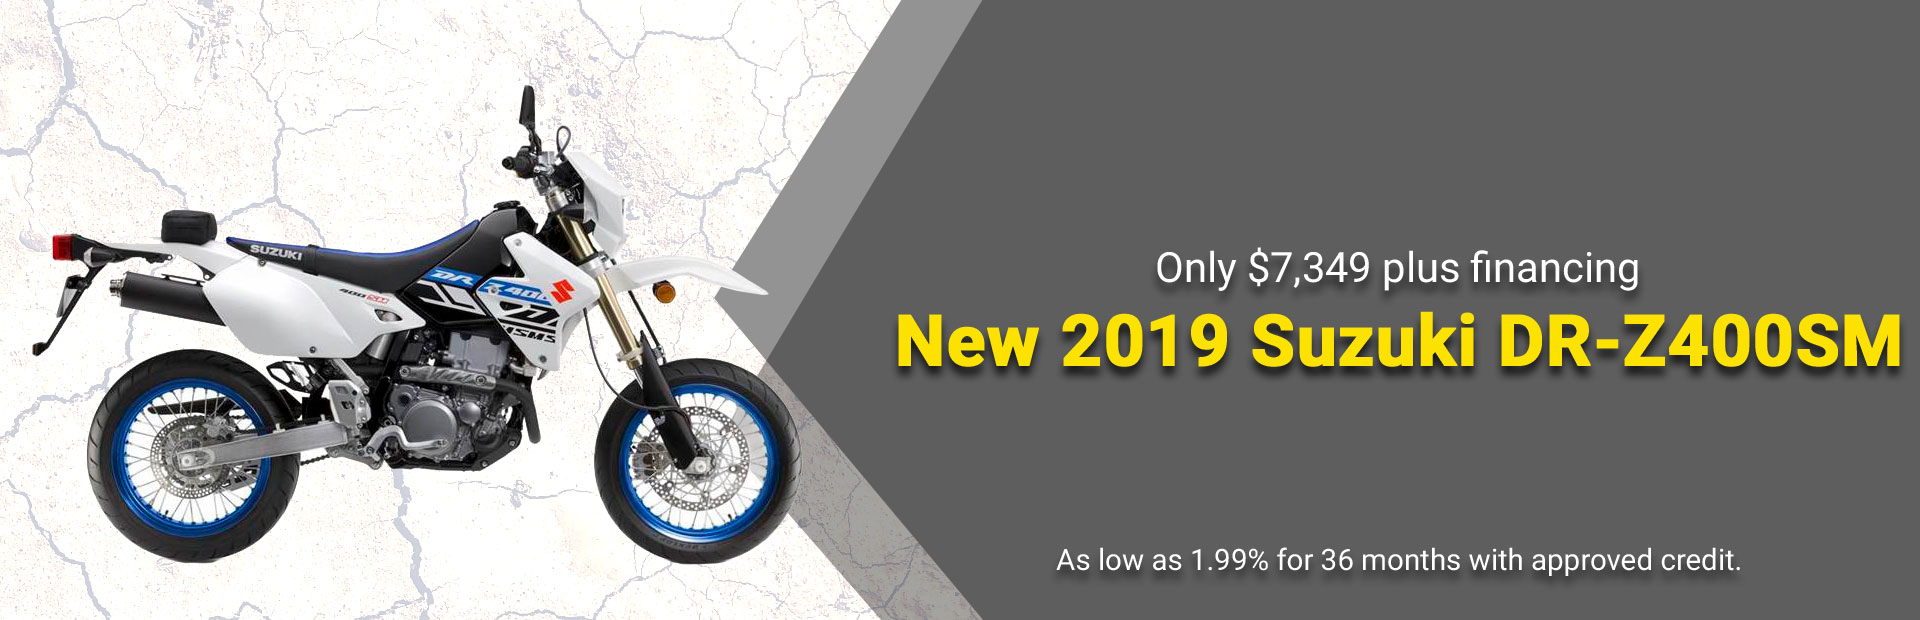 New 2019 Suzuki DR-Z400SM only $7,349 plus financing: Click here for further information!